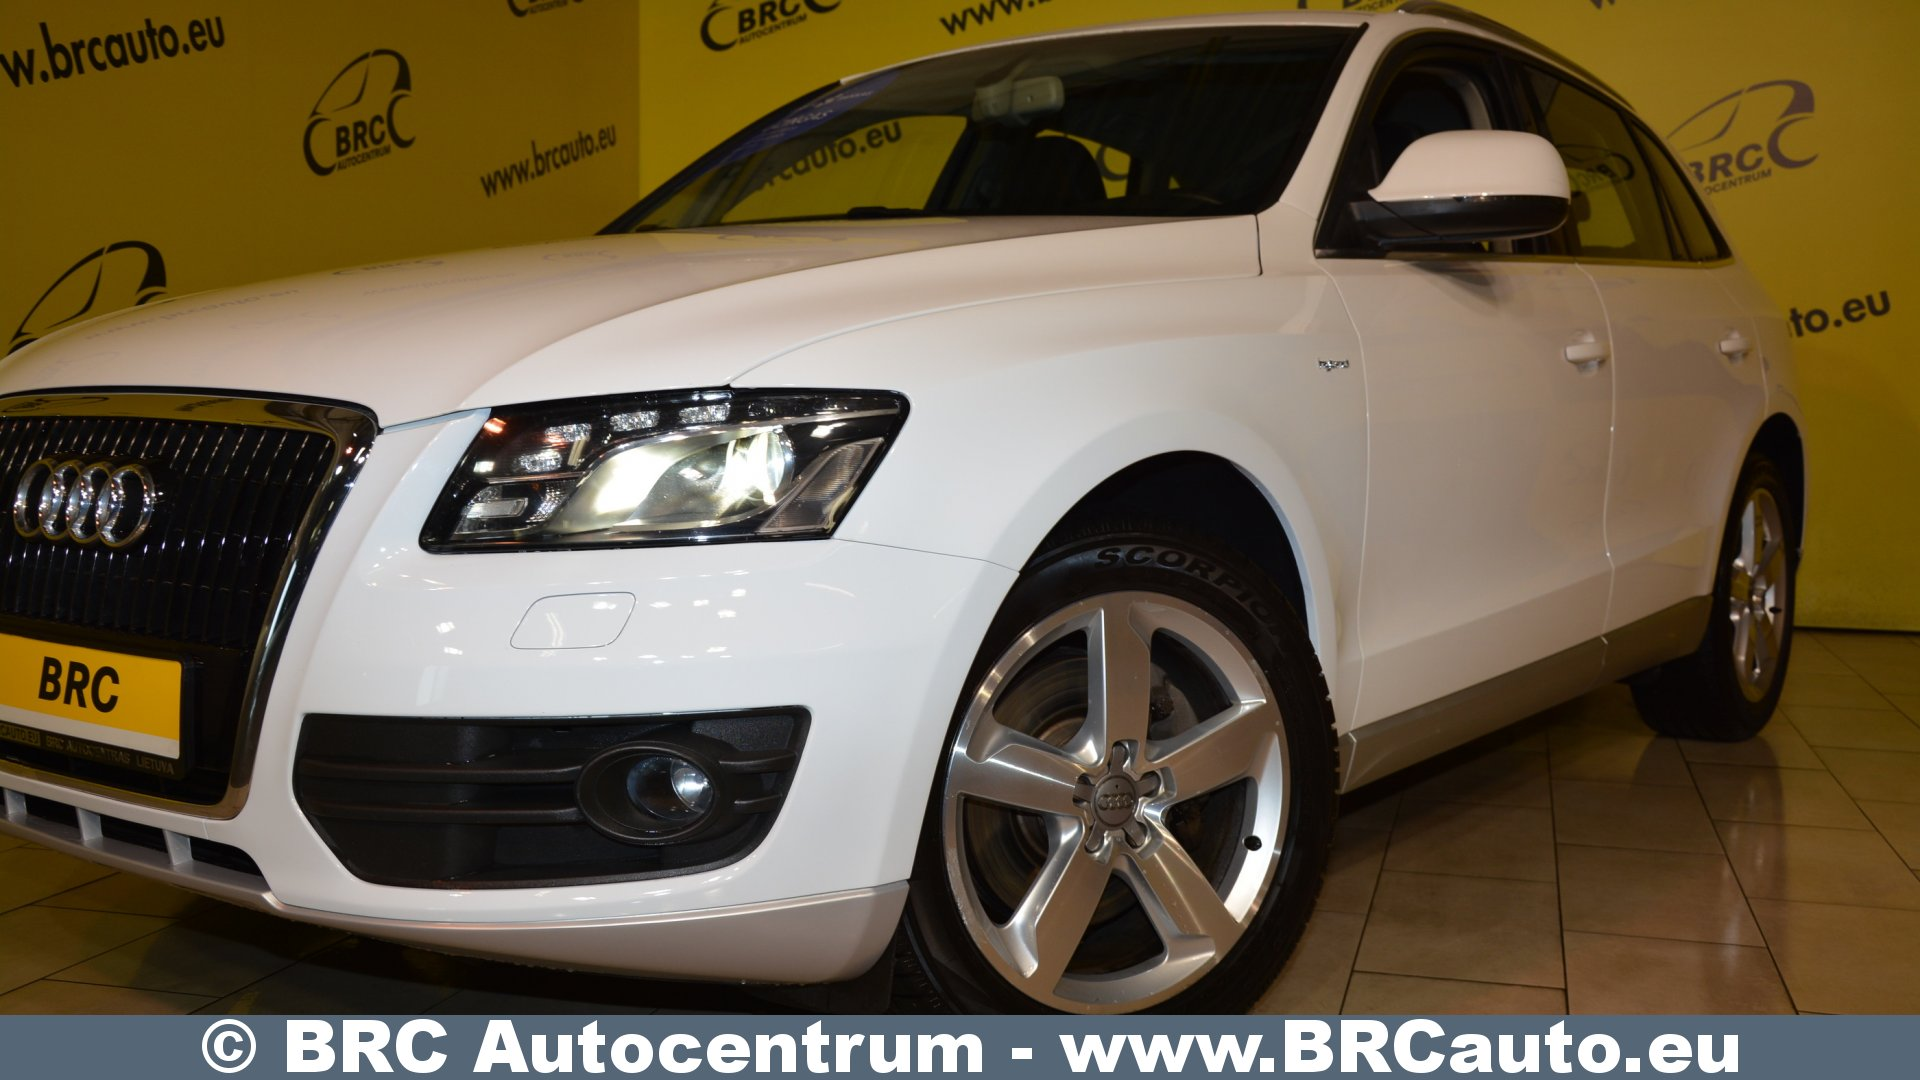 audi q5 quattro hybrid automatas no 203 brc autocentrum. Black Bedroom Furniture Sets. Home Design Ideas